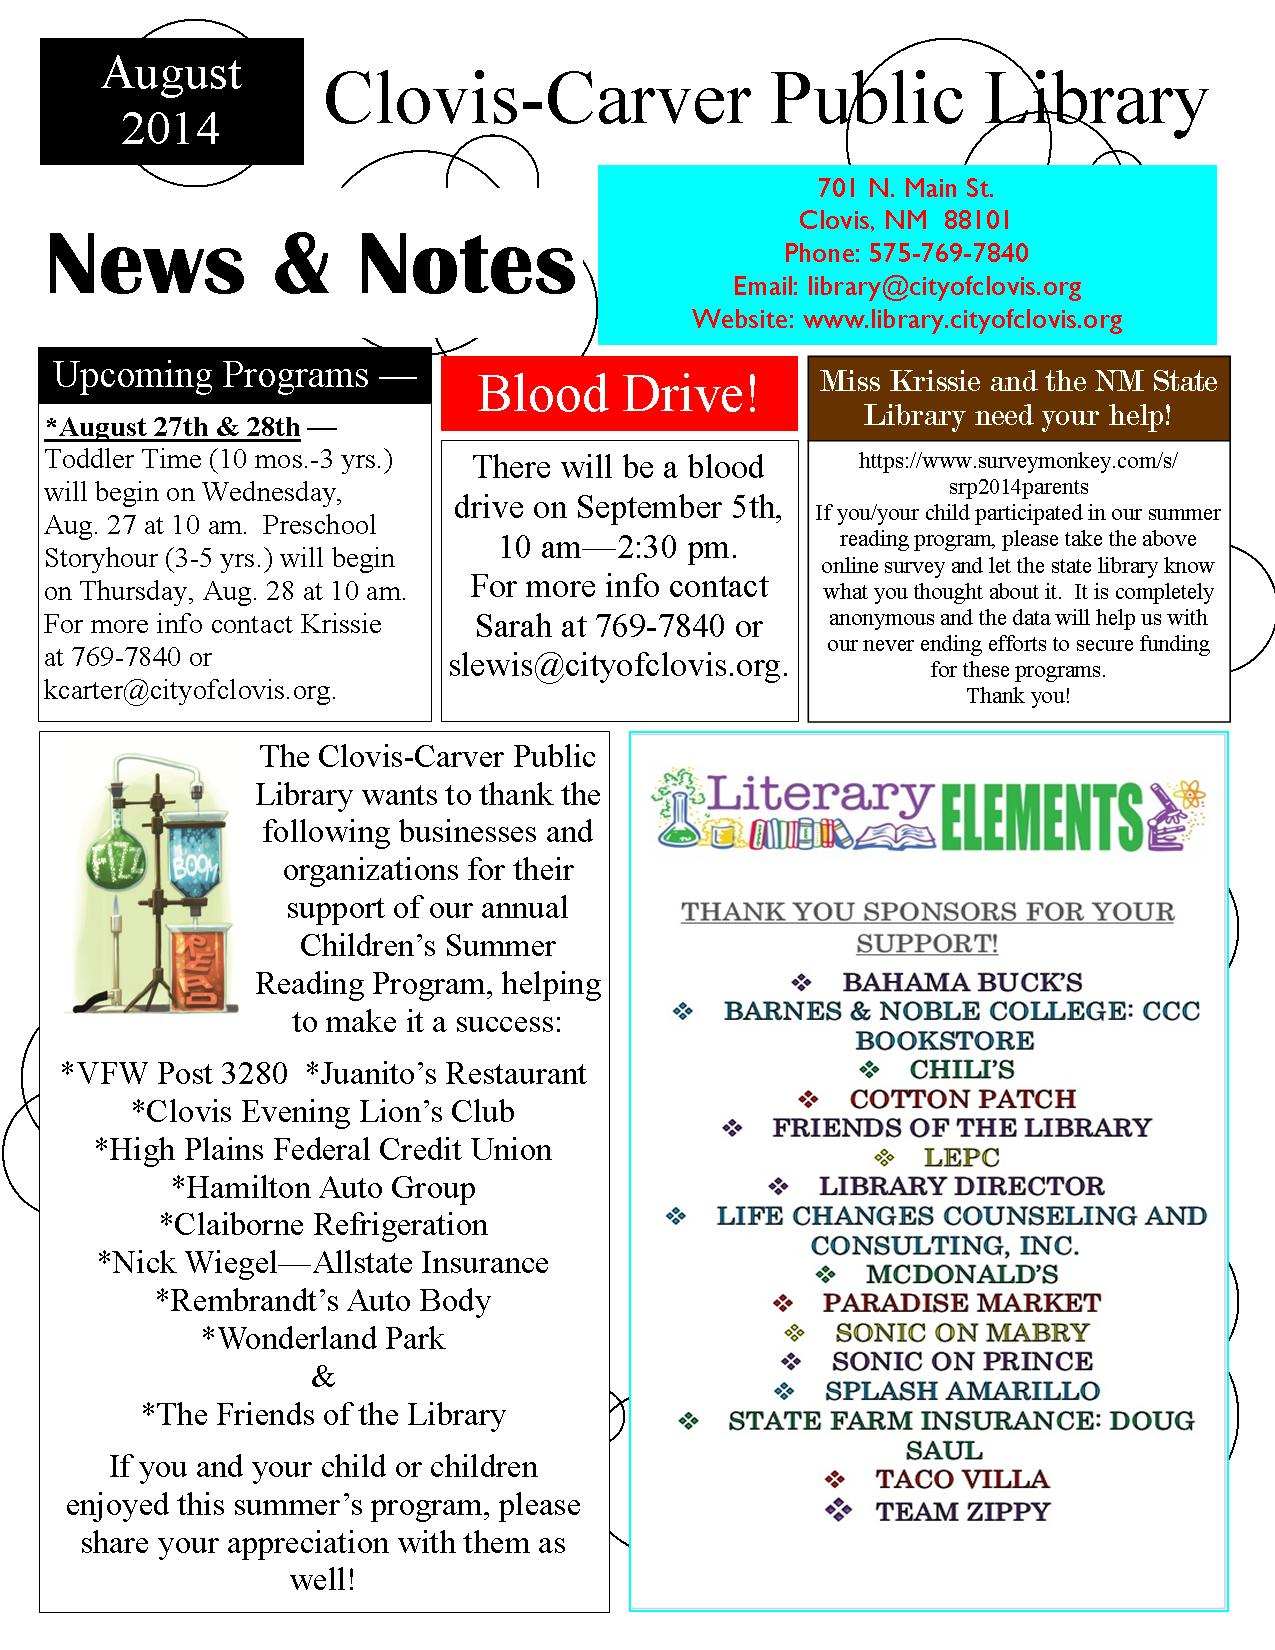 August 2014 page 1